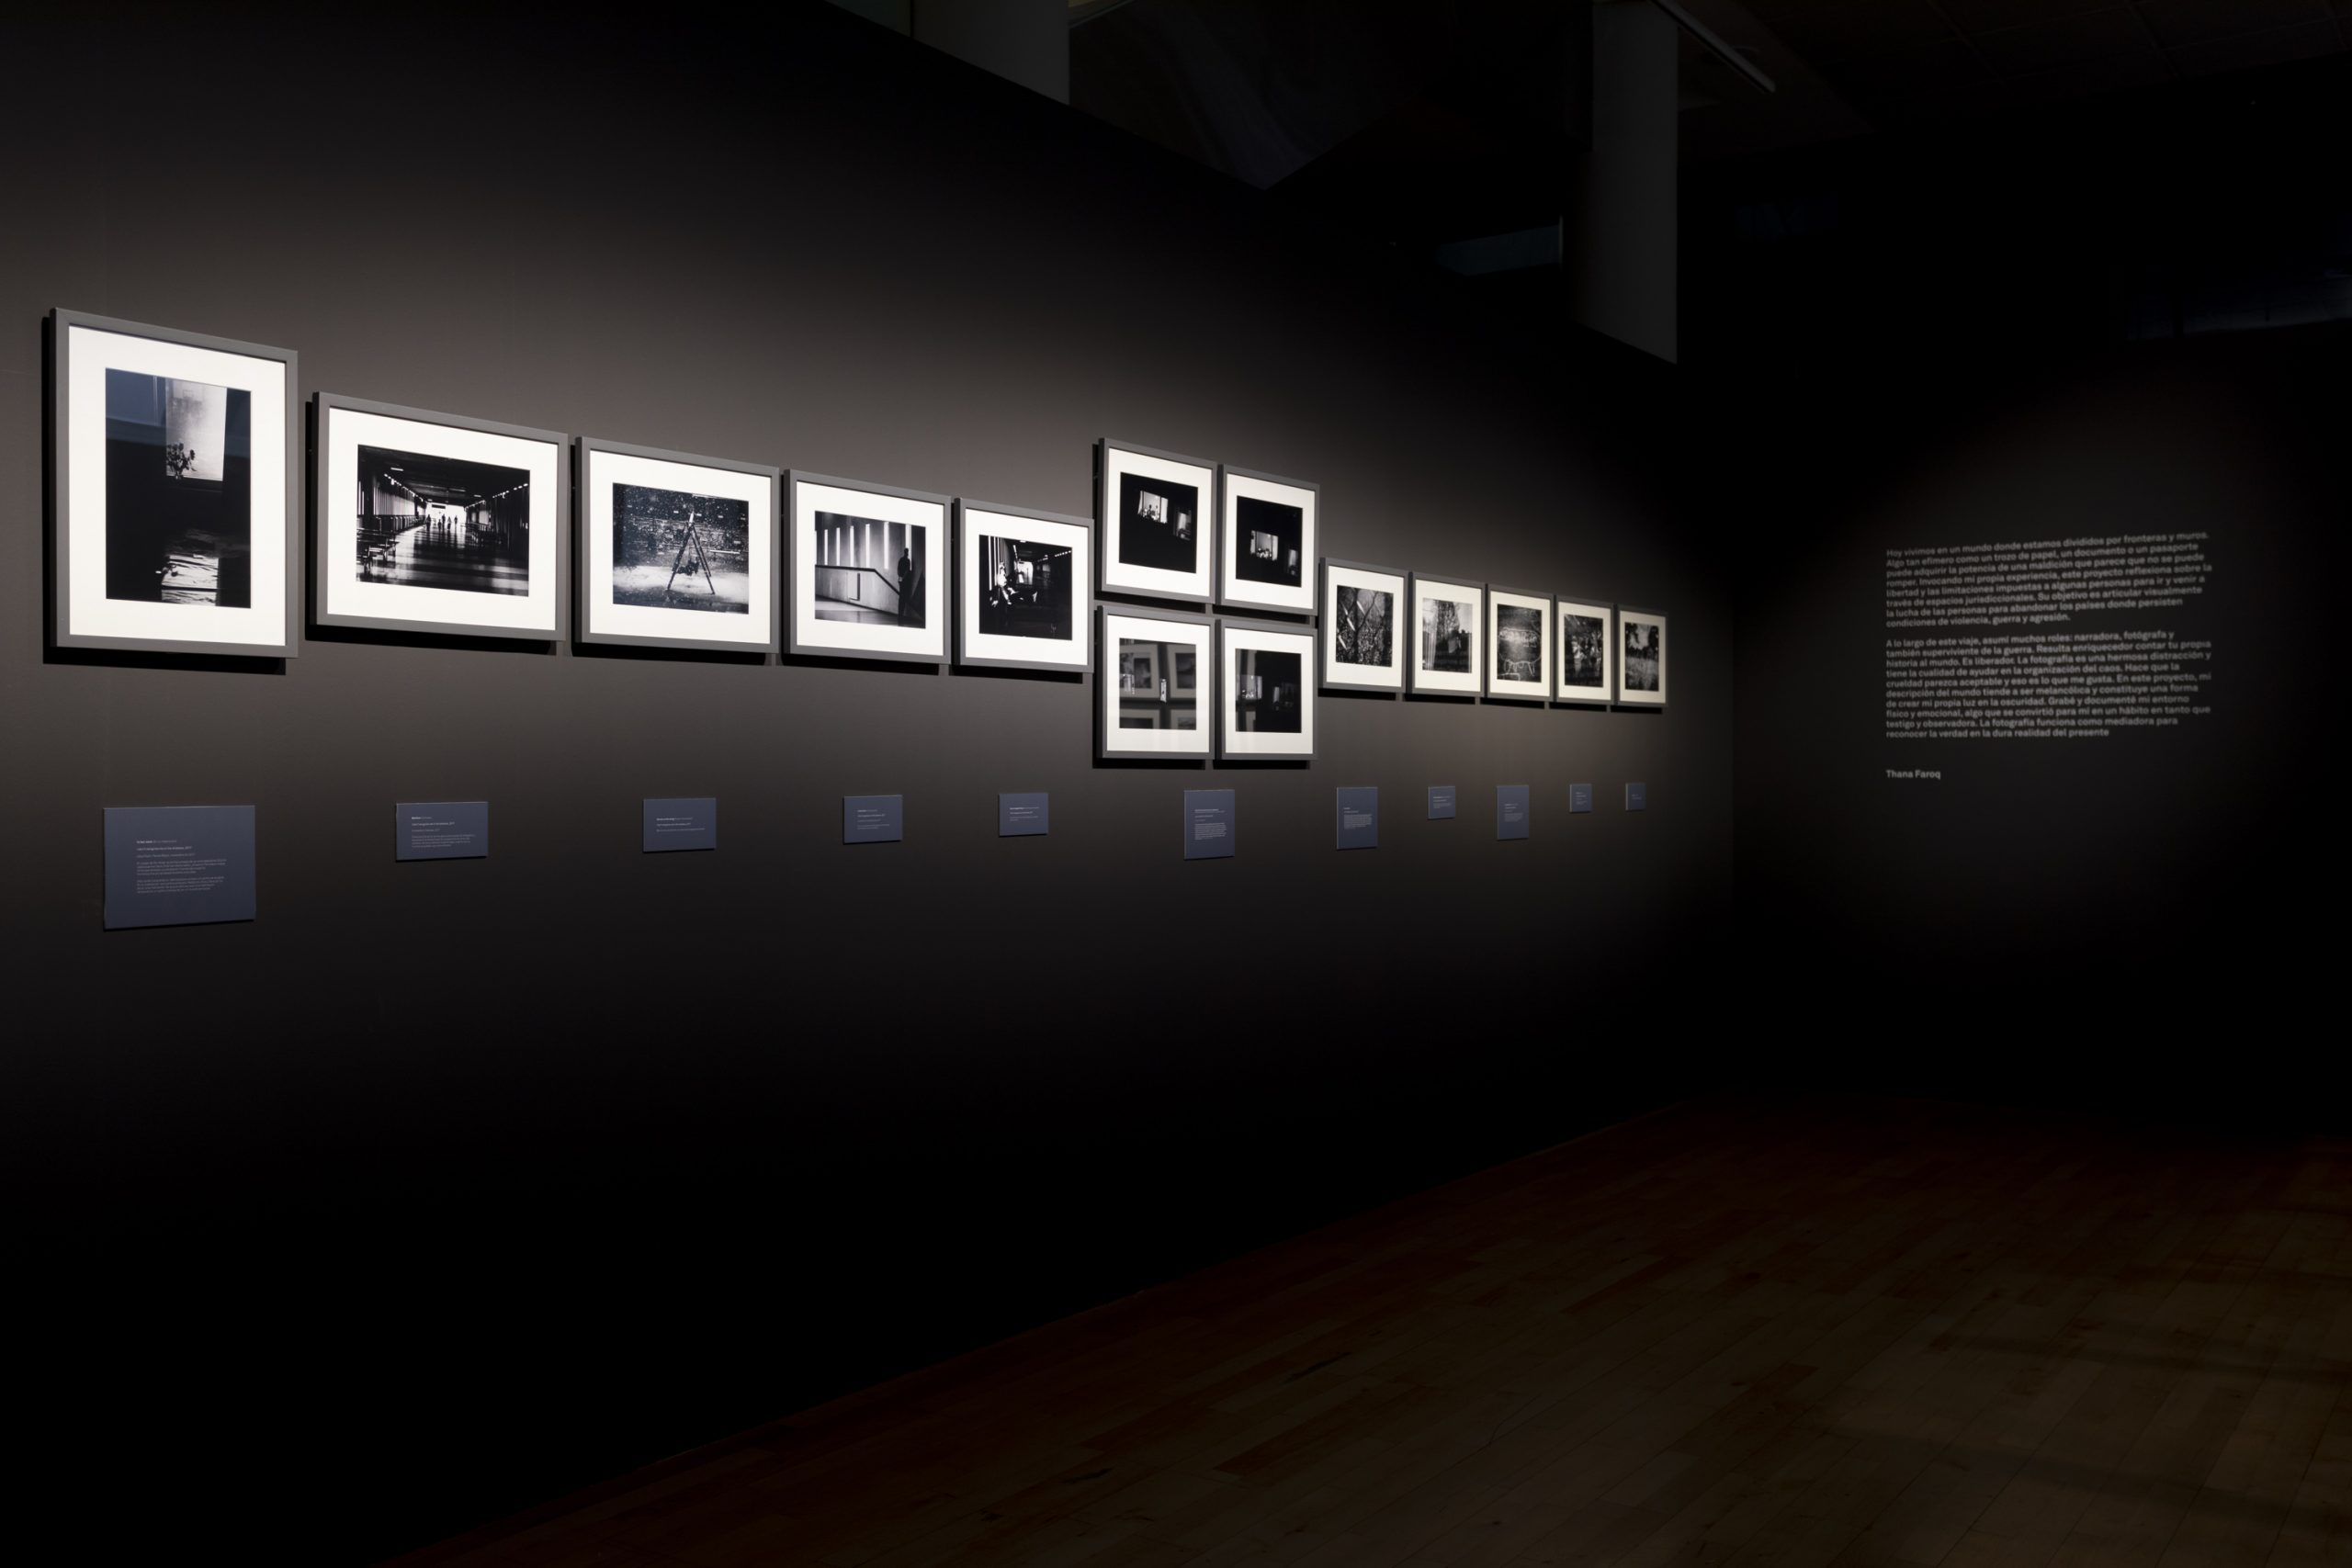 Installation shots from the project ' I don't Recognize Me in the Shadows' exhibited as part of Photo Spain Festival 2020